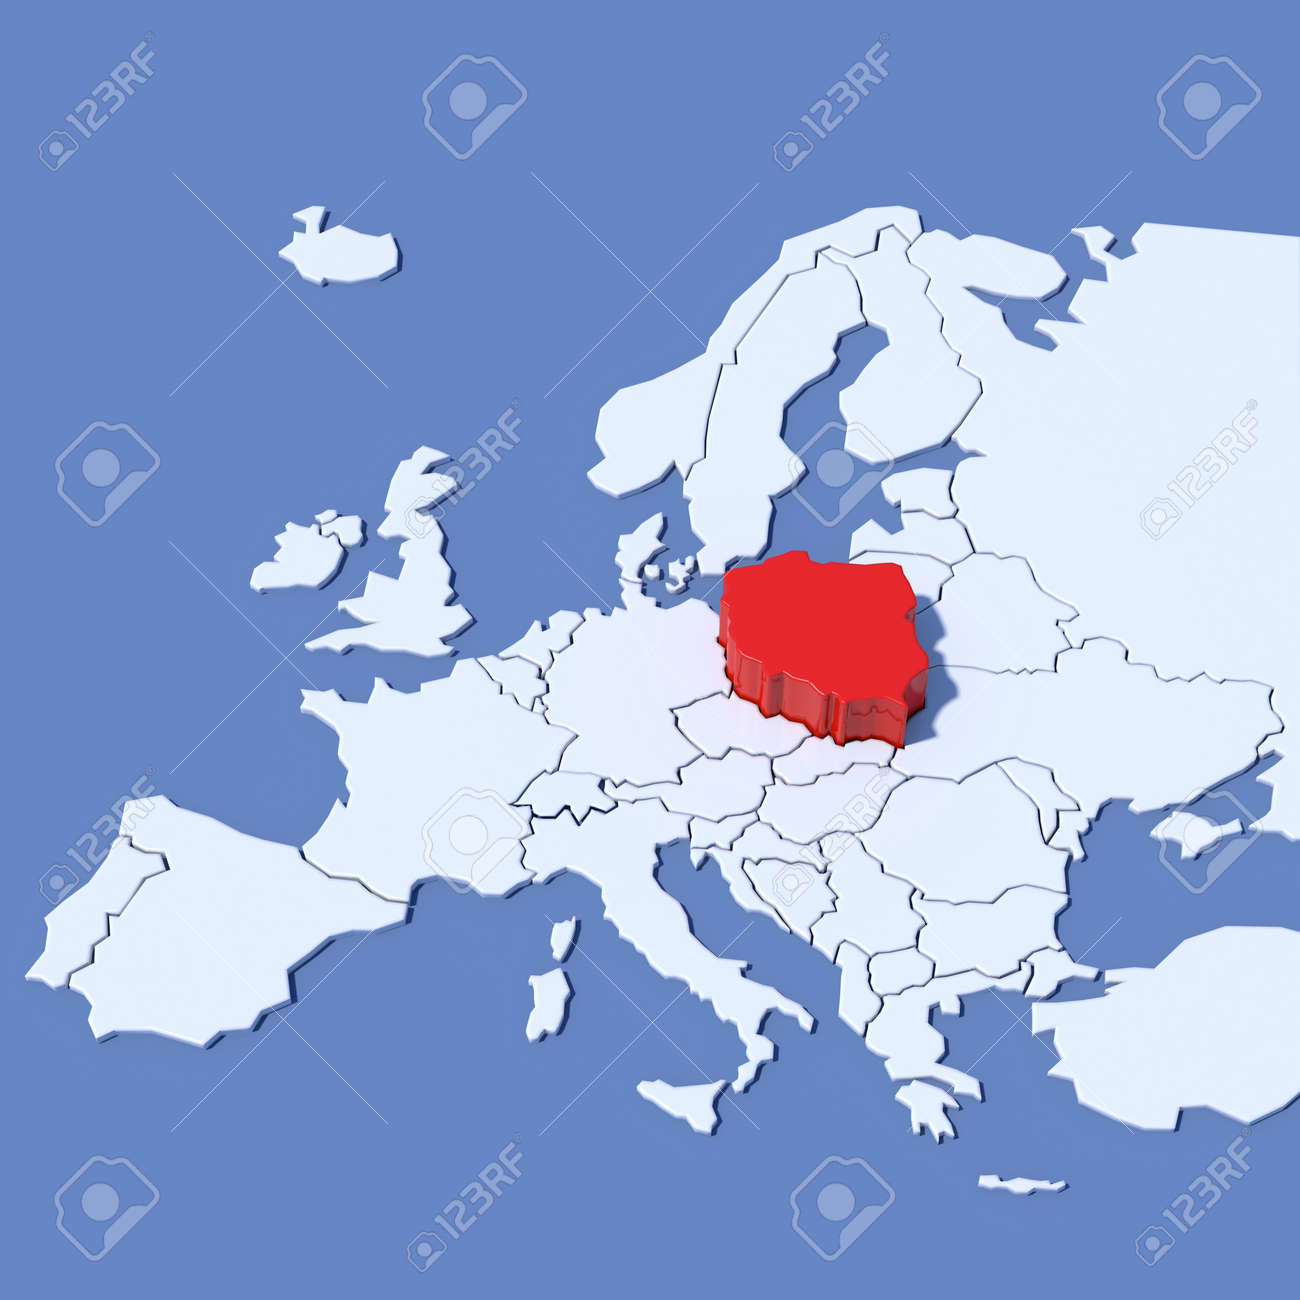 3D Map Of Europe With Indication Poland Stock Photo, Picture And ...